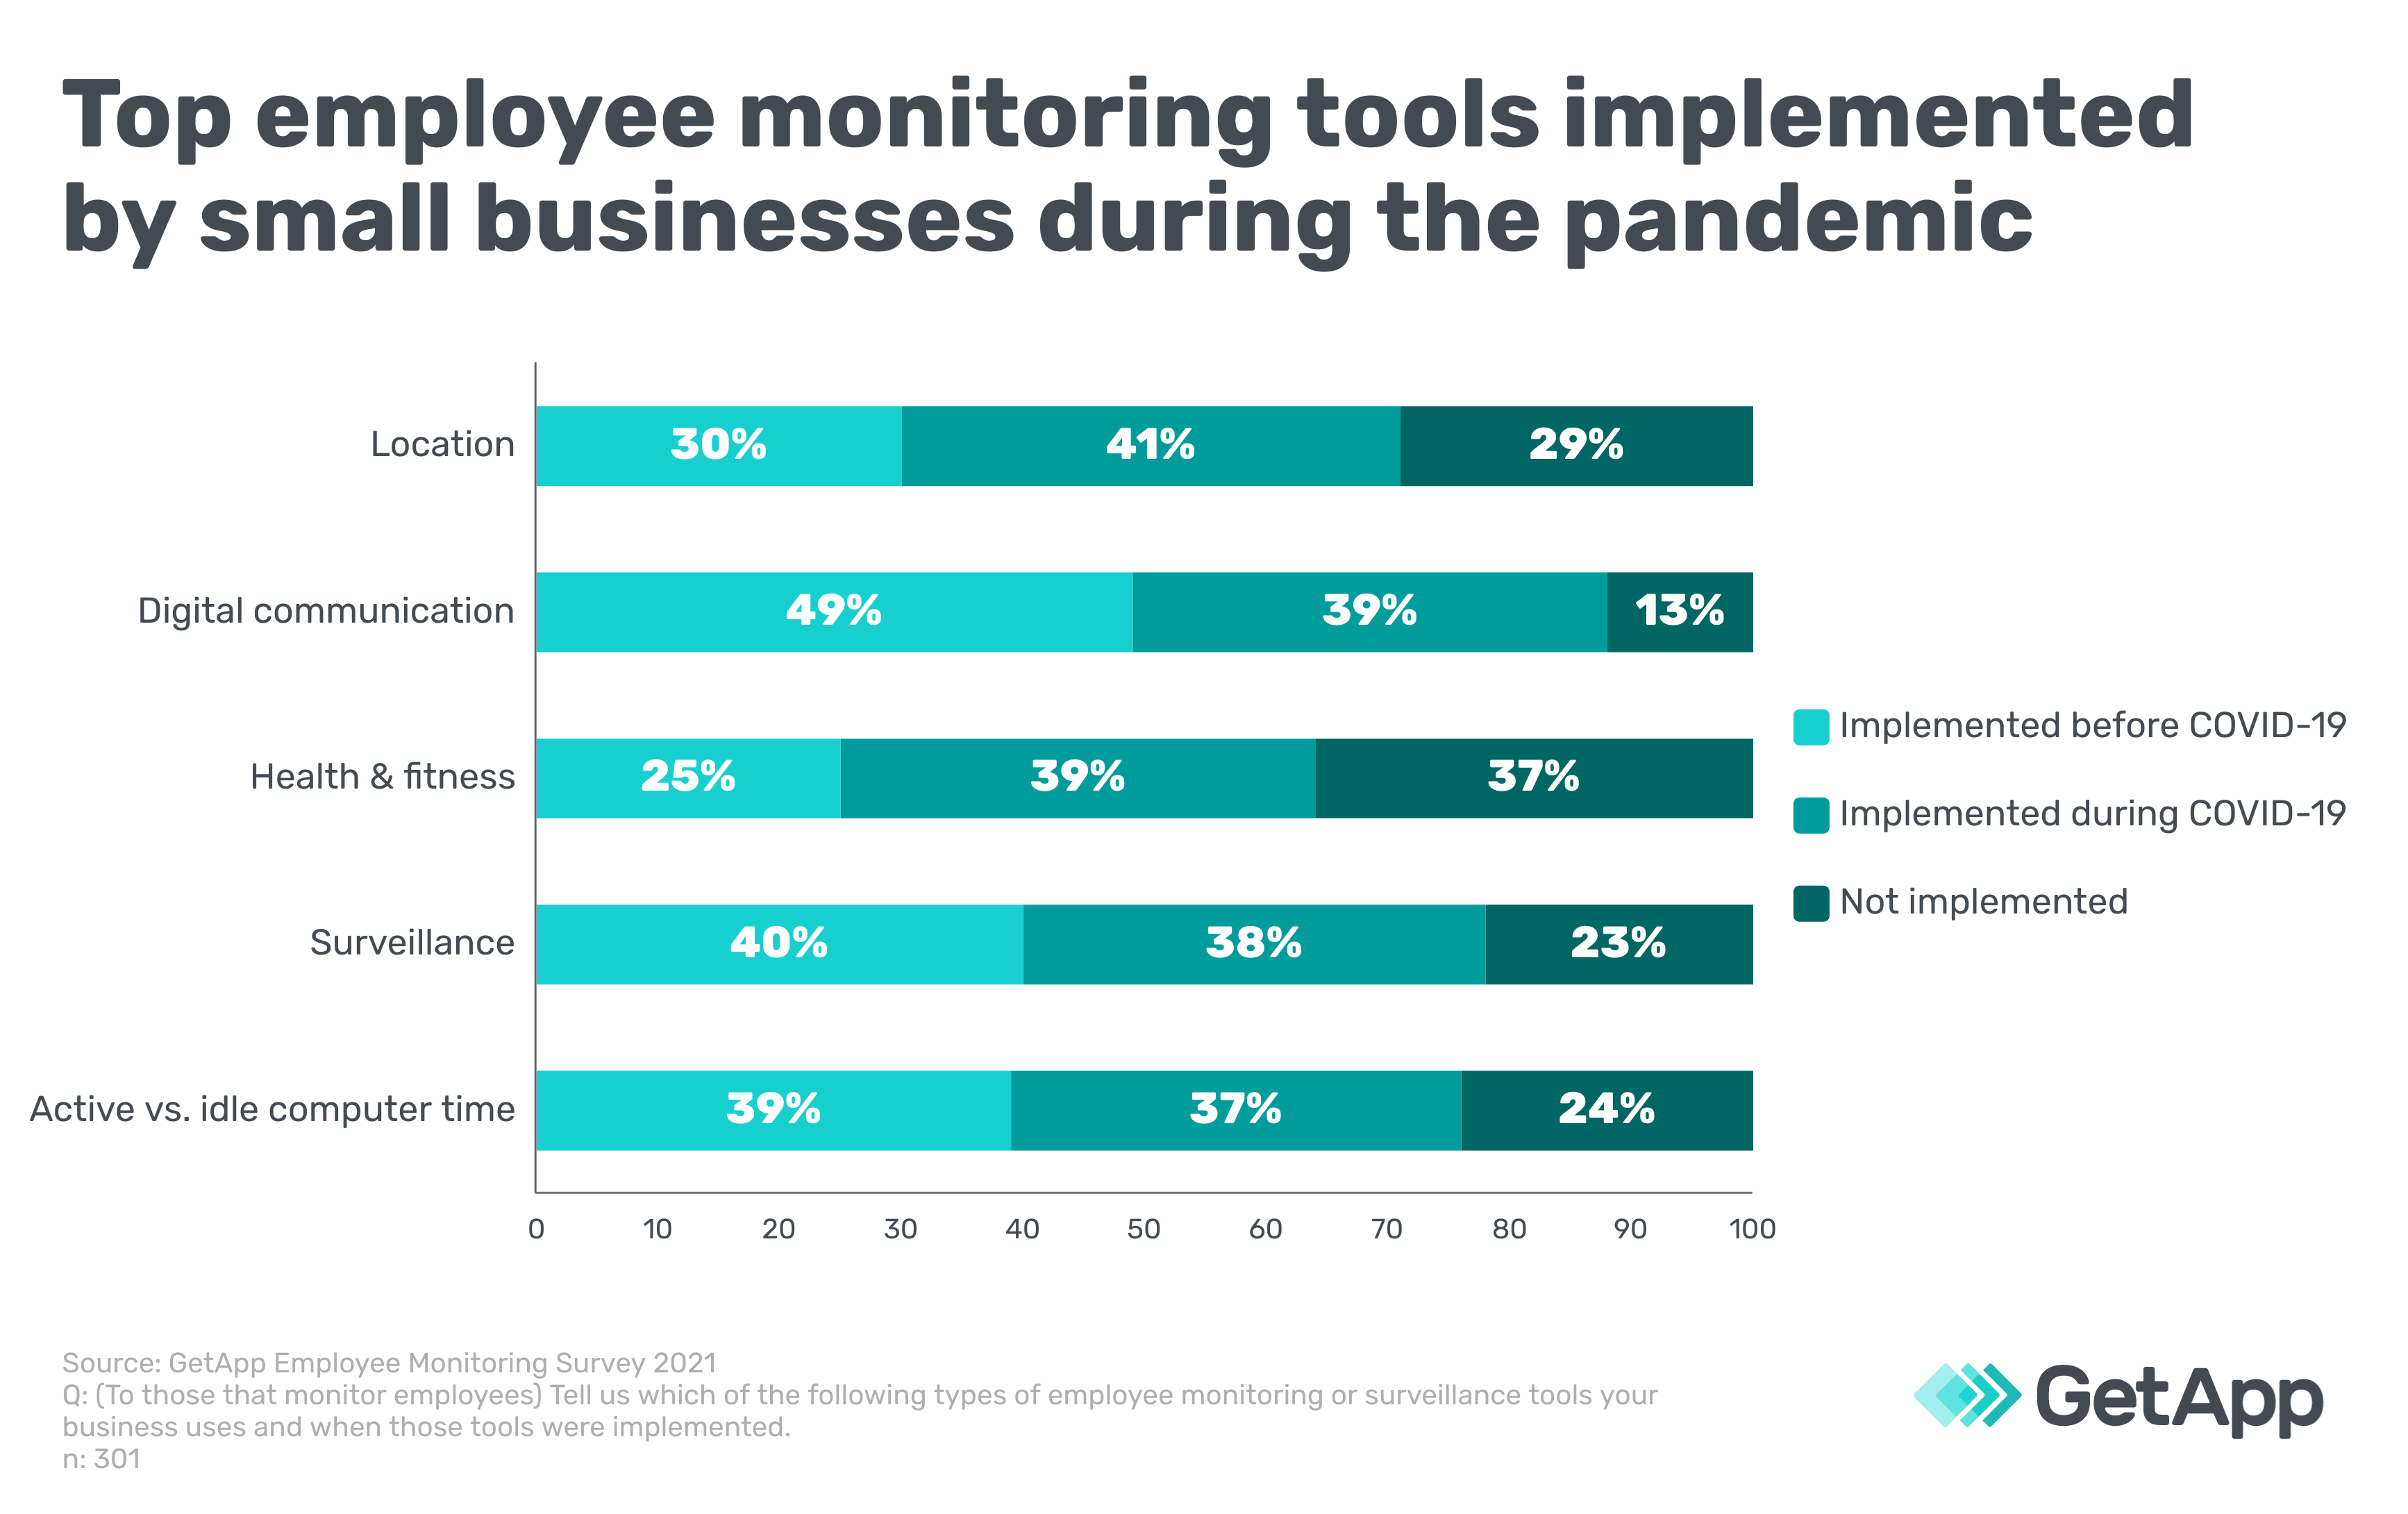 Top employee monitoring tools implemented by small businesses during the pandemic